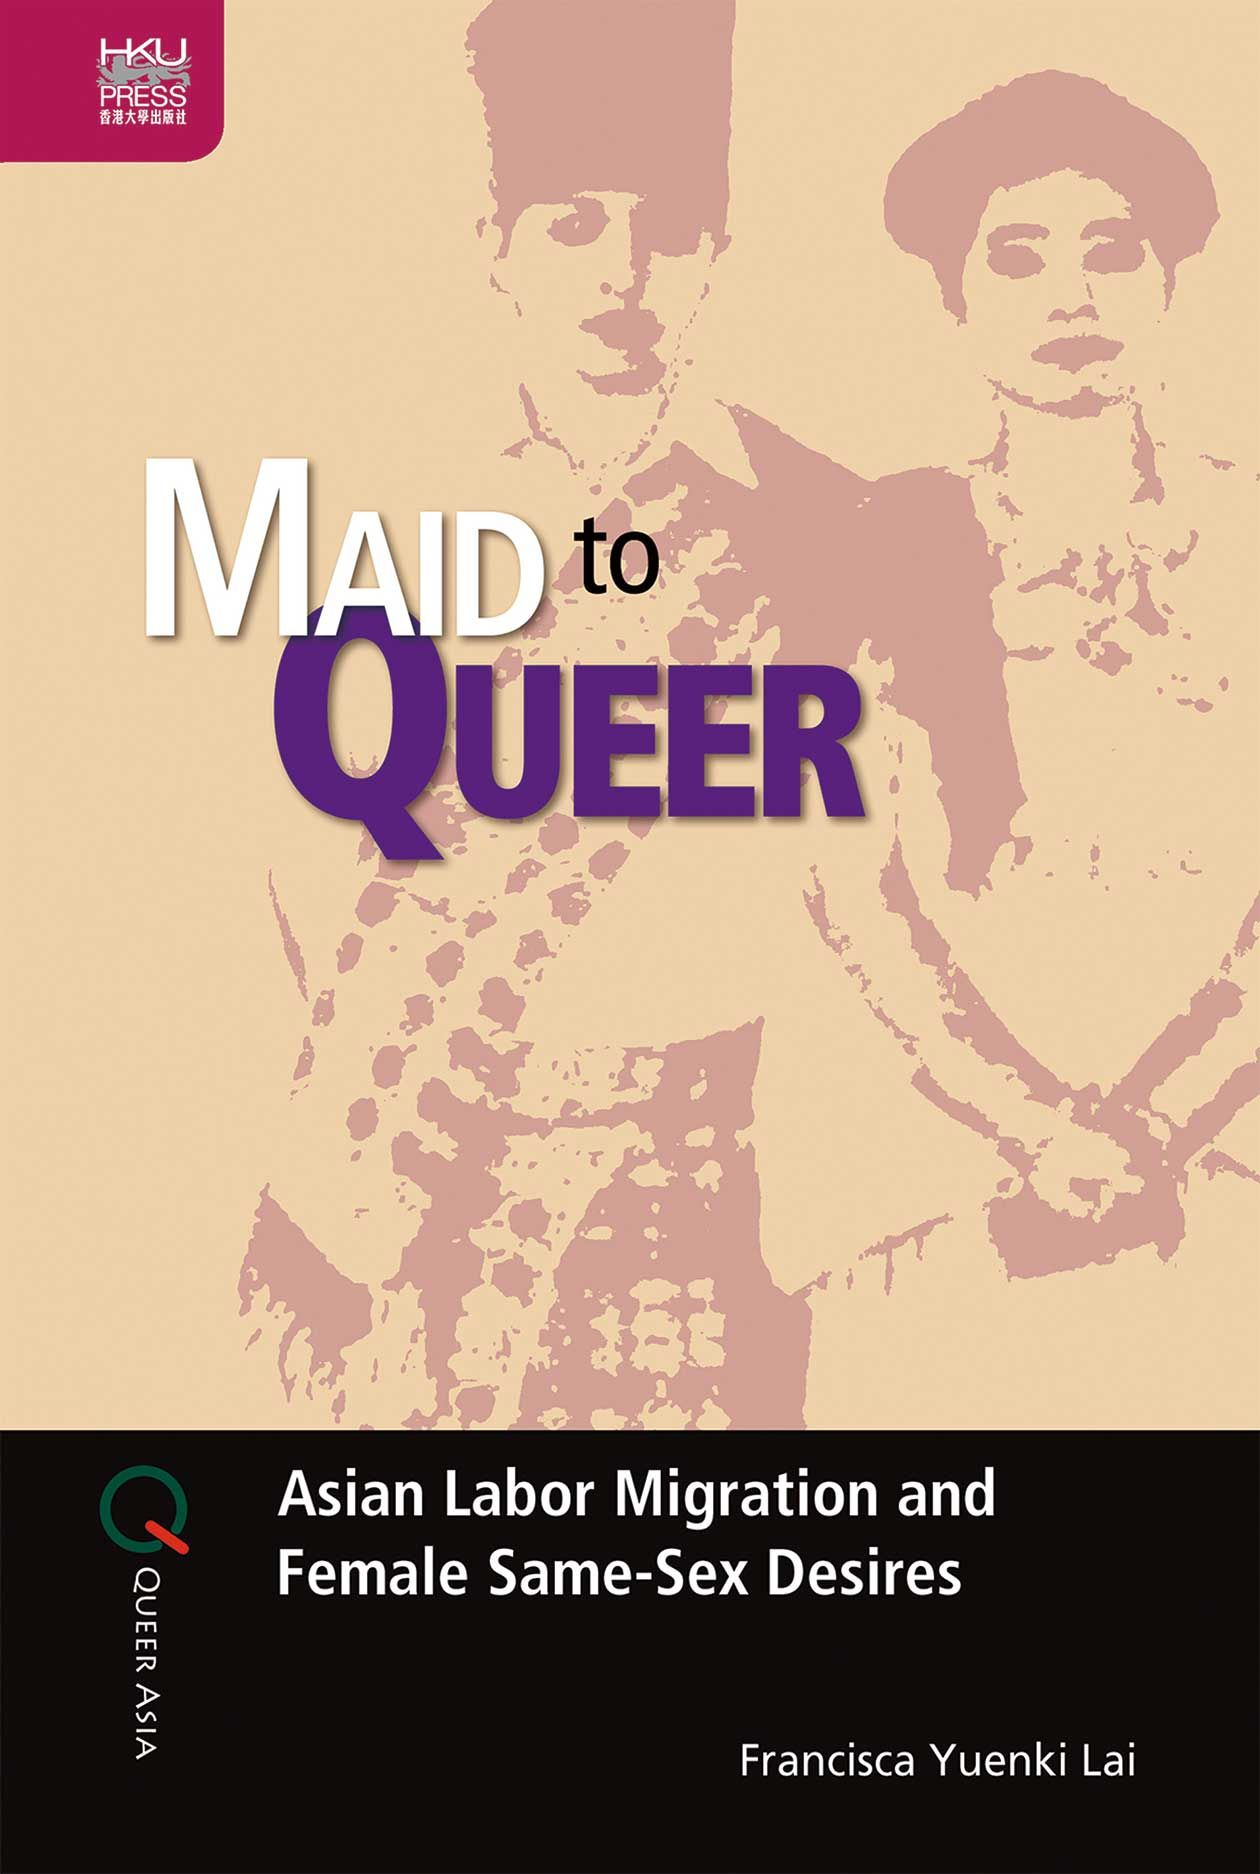 Maid to Queer